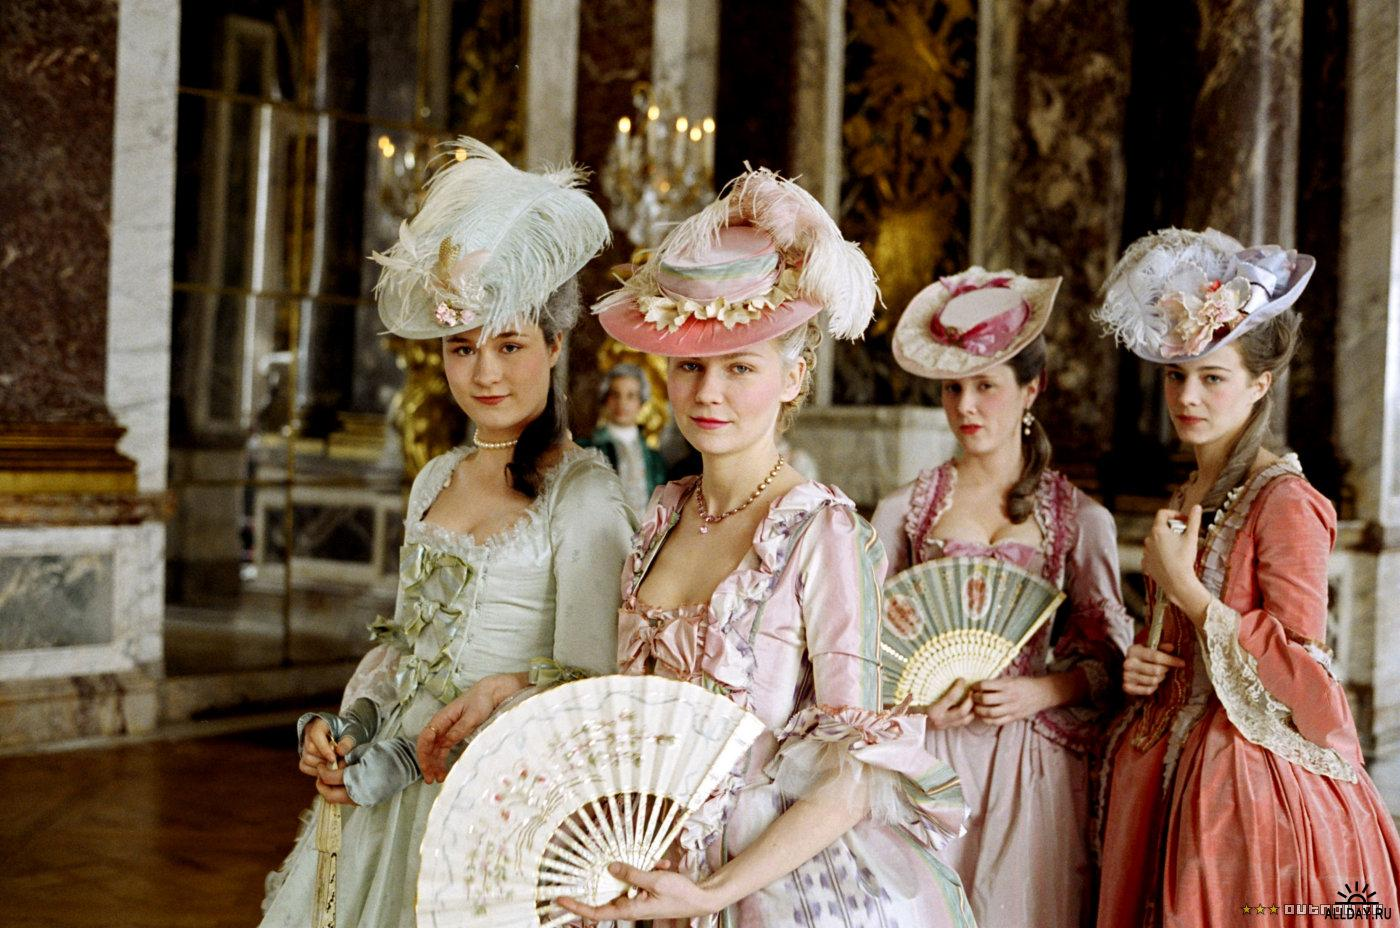 Cinematic Fashion: Marie Antoinette